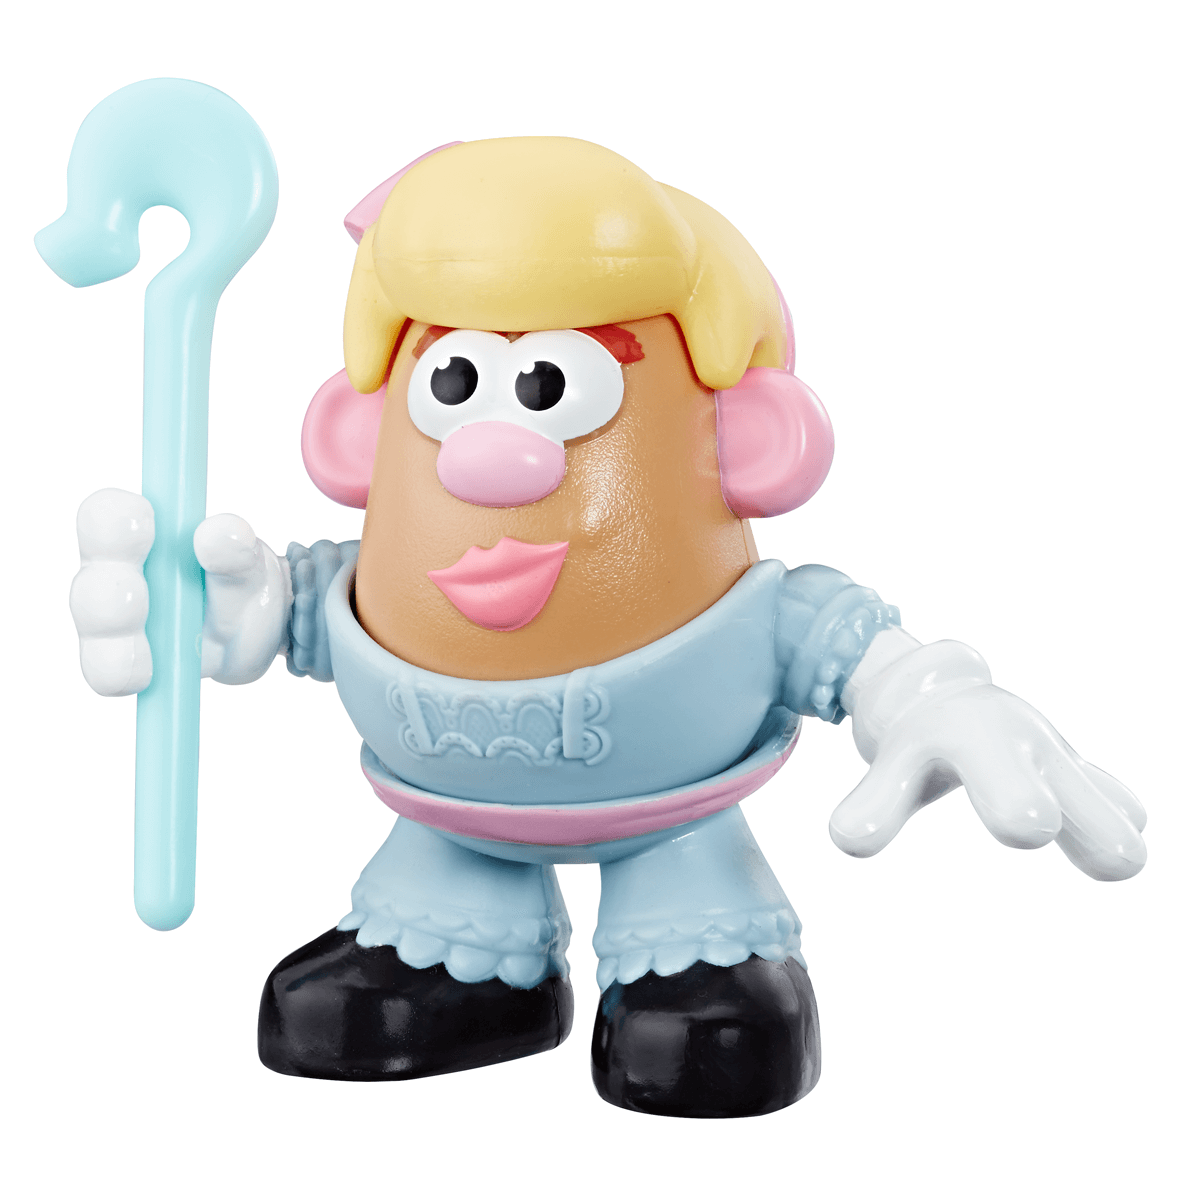 Disney Pixar Toy Story 4 Mini Mr Potato Head Bo Peep